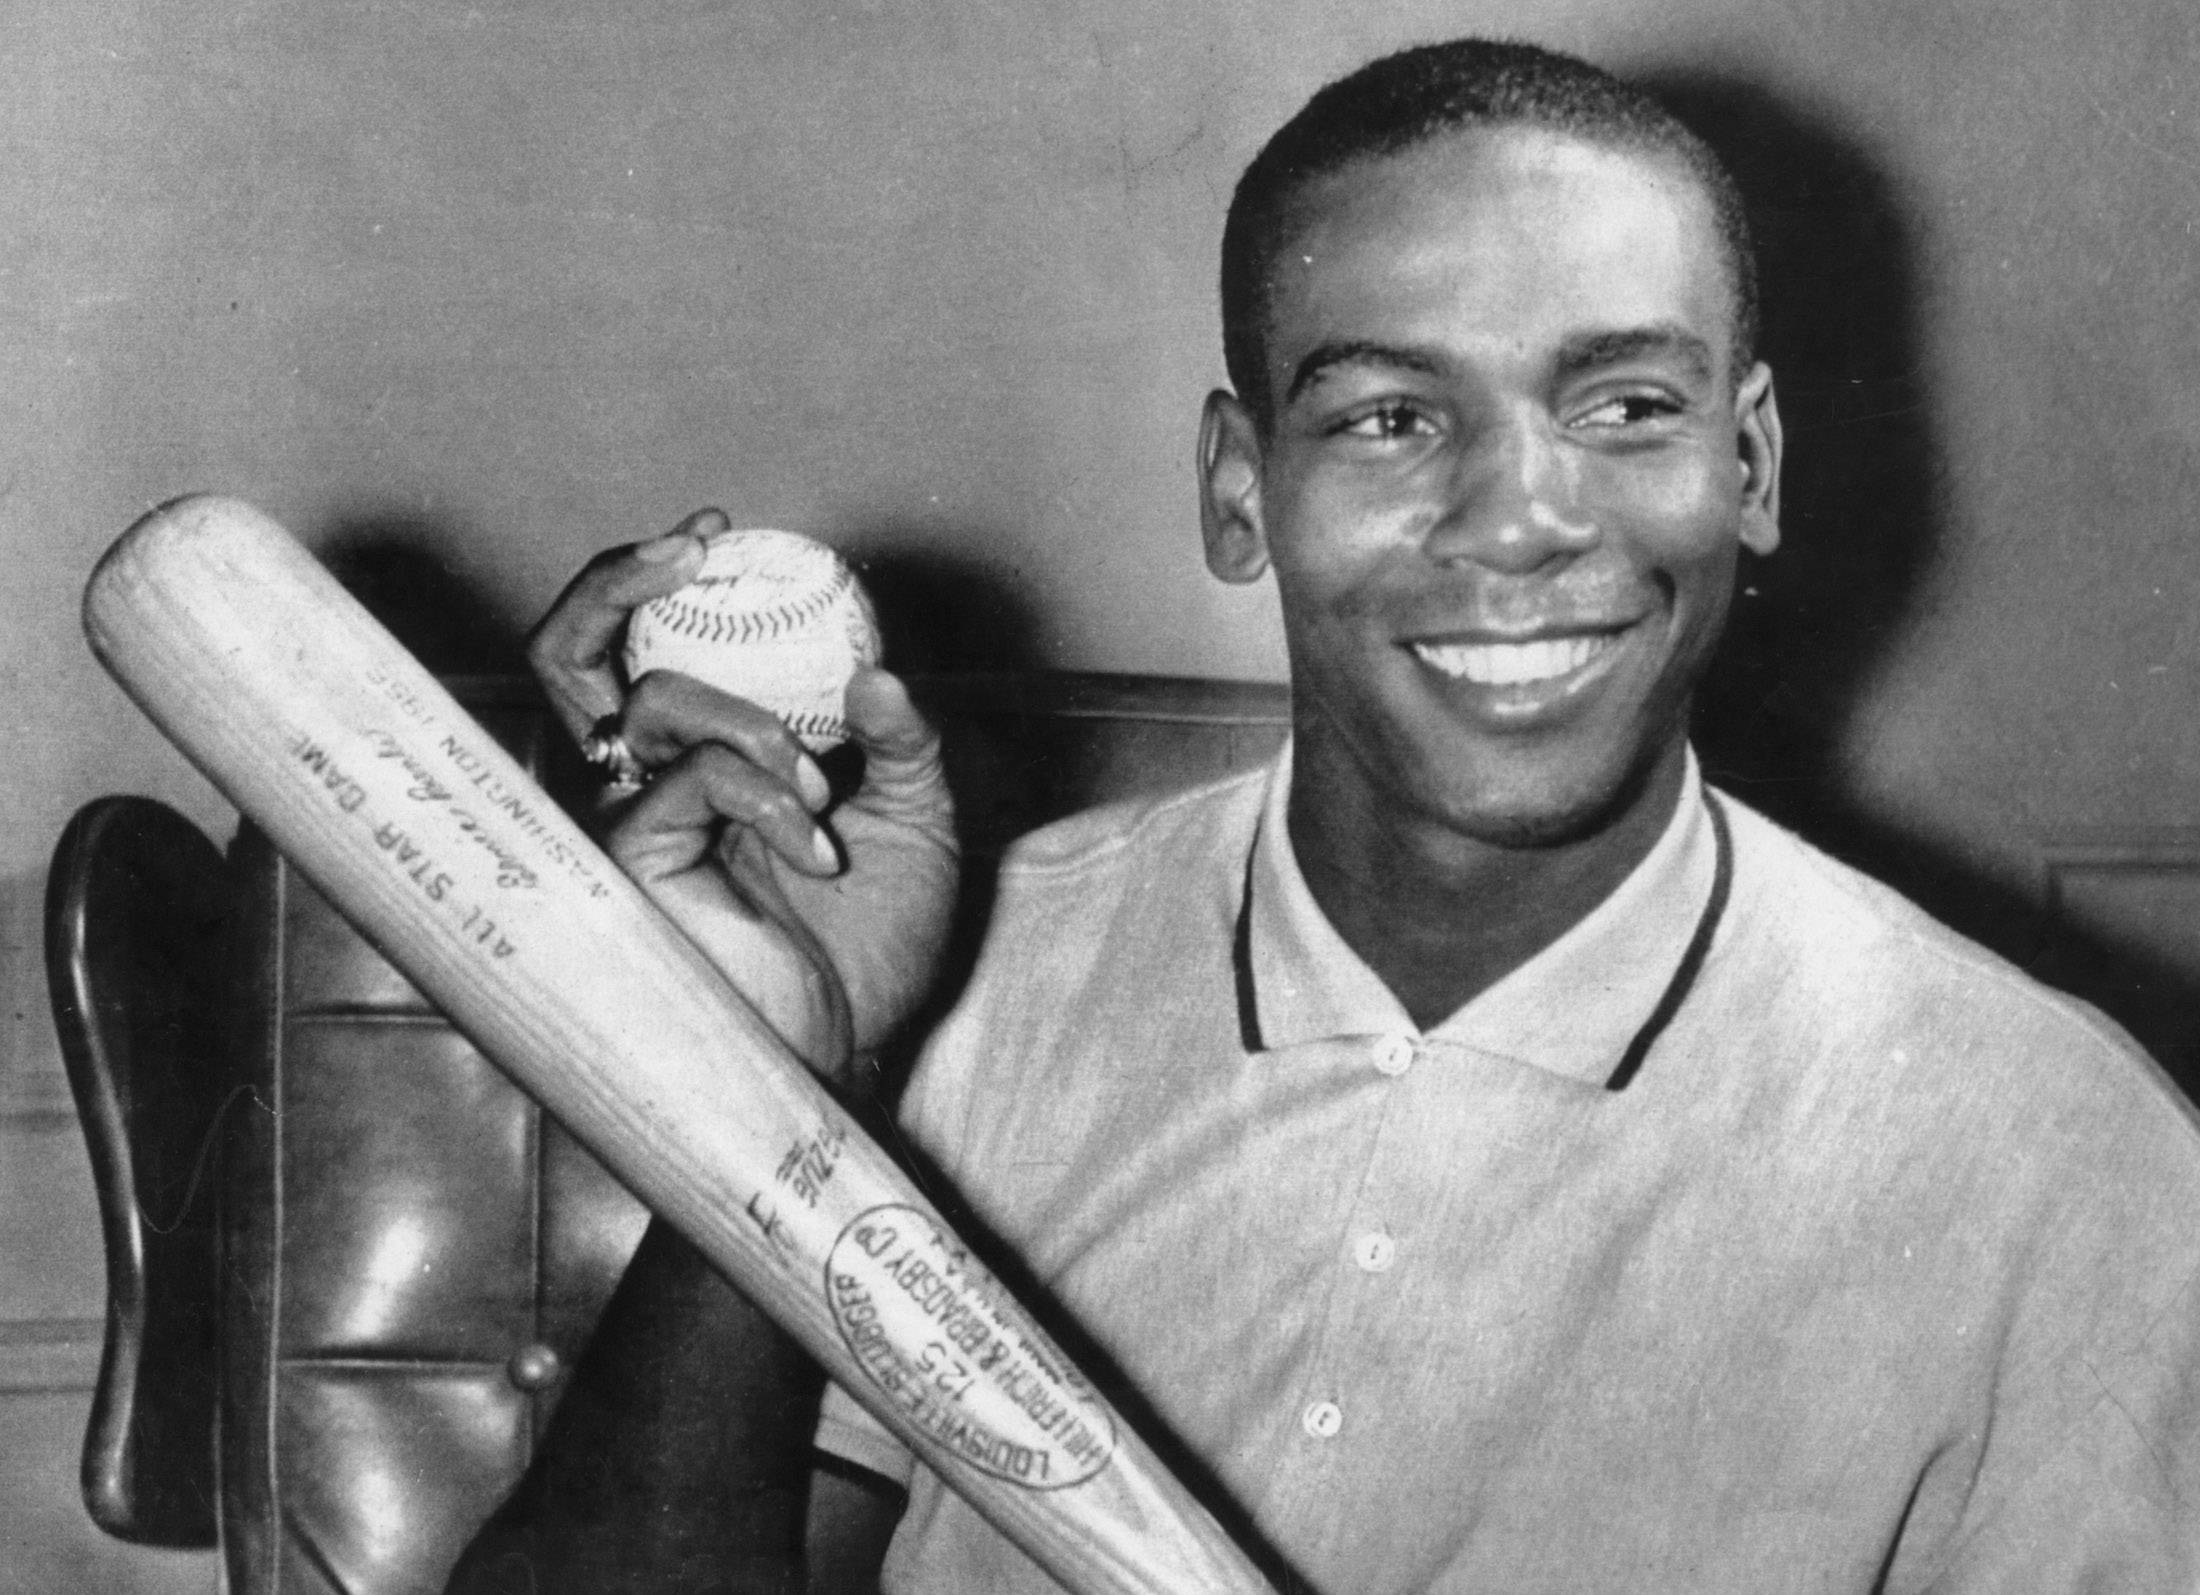 Ernie Banks in 1958 after he was named the National League's Most Valuable Player. He also won the MVP award in 1959 to become the first player to win in two consecutive years.